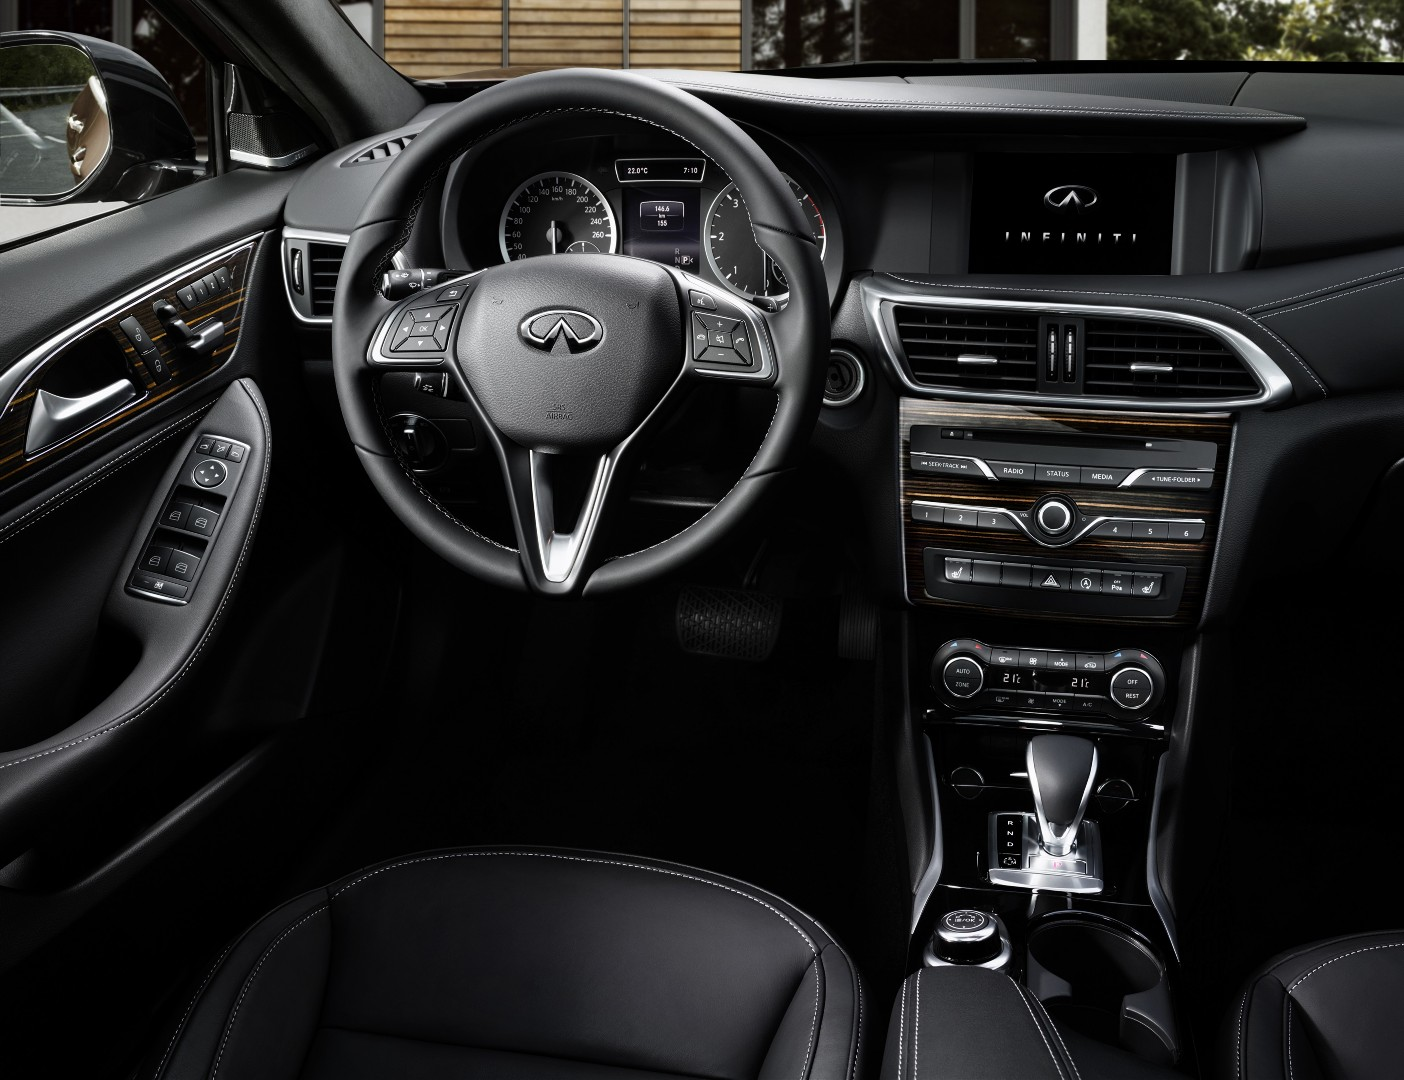 Infiniti Q30 SECOND IMAGE black 4K - 1 Sept 2015